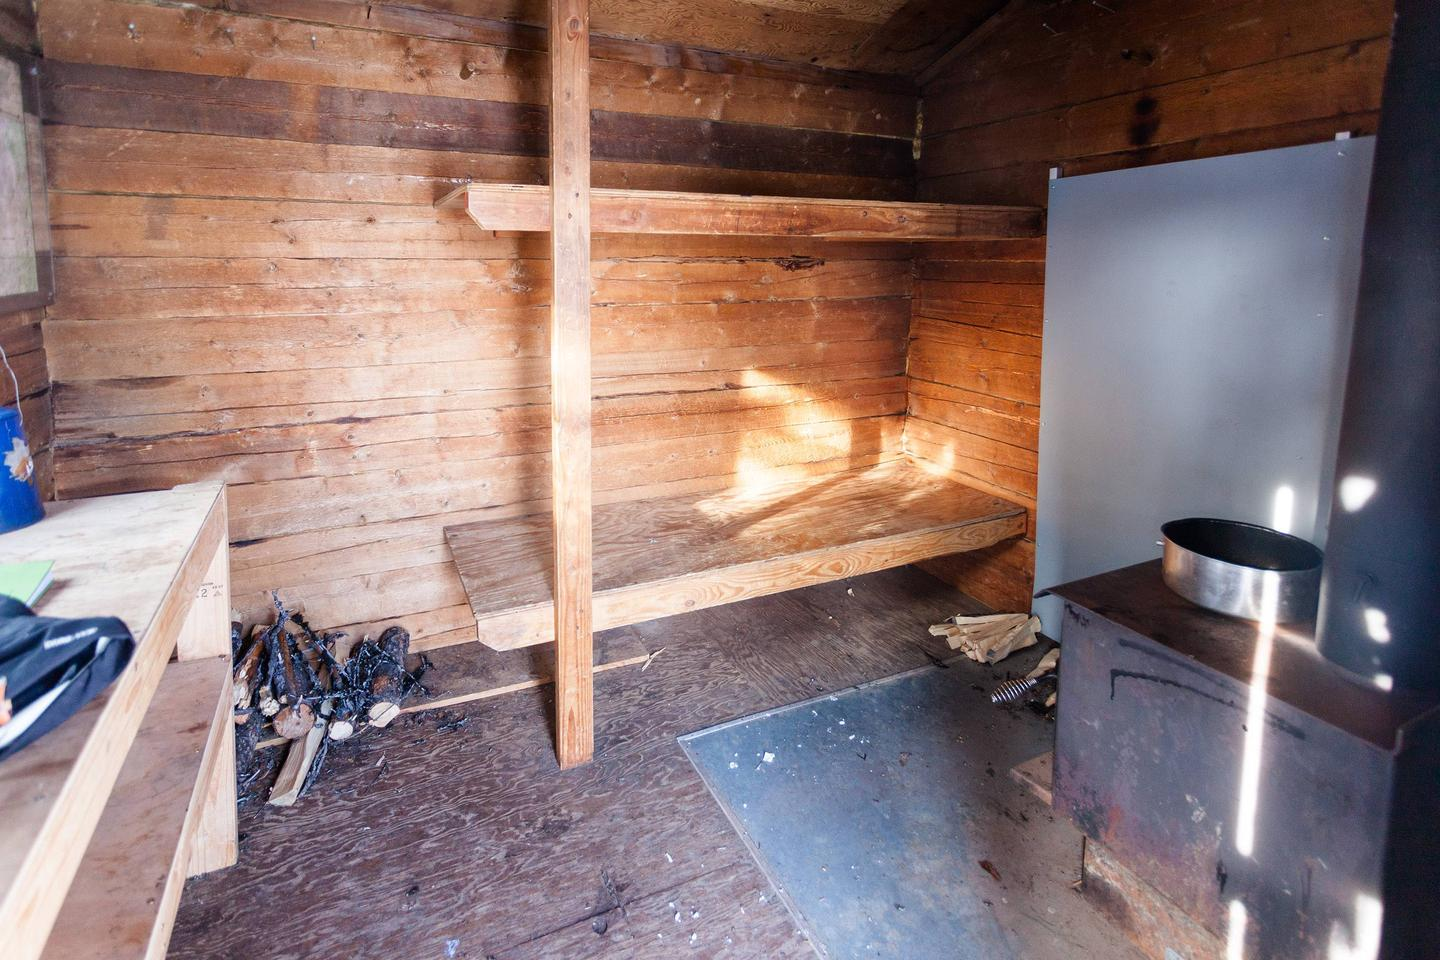 Inside view of very small log cabin with bunks and woodstoveInterior of Wickersham Creek Trail Shelter